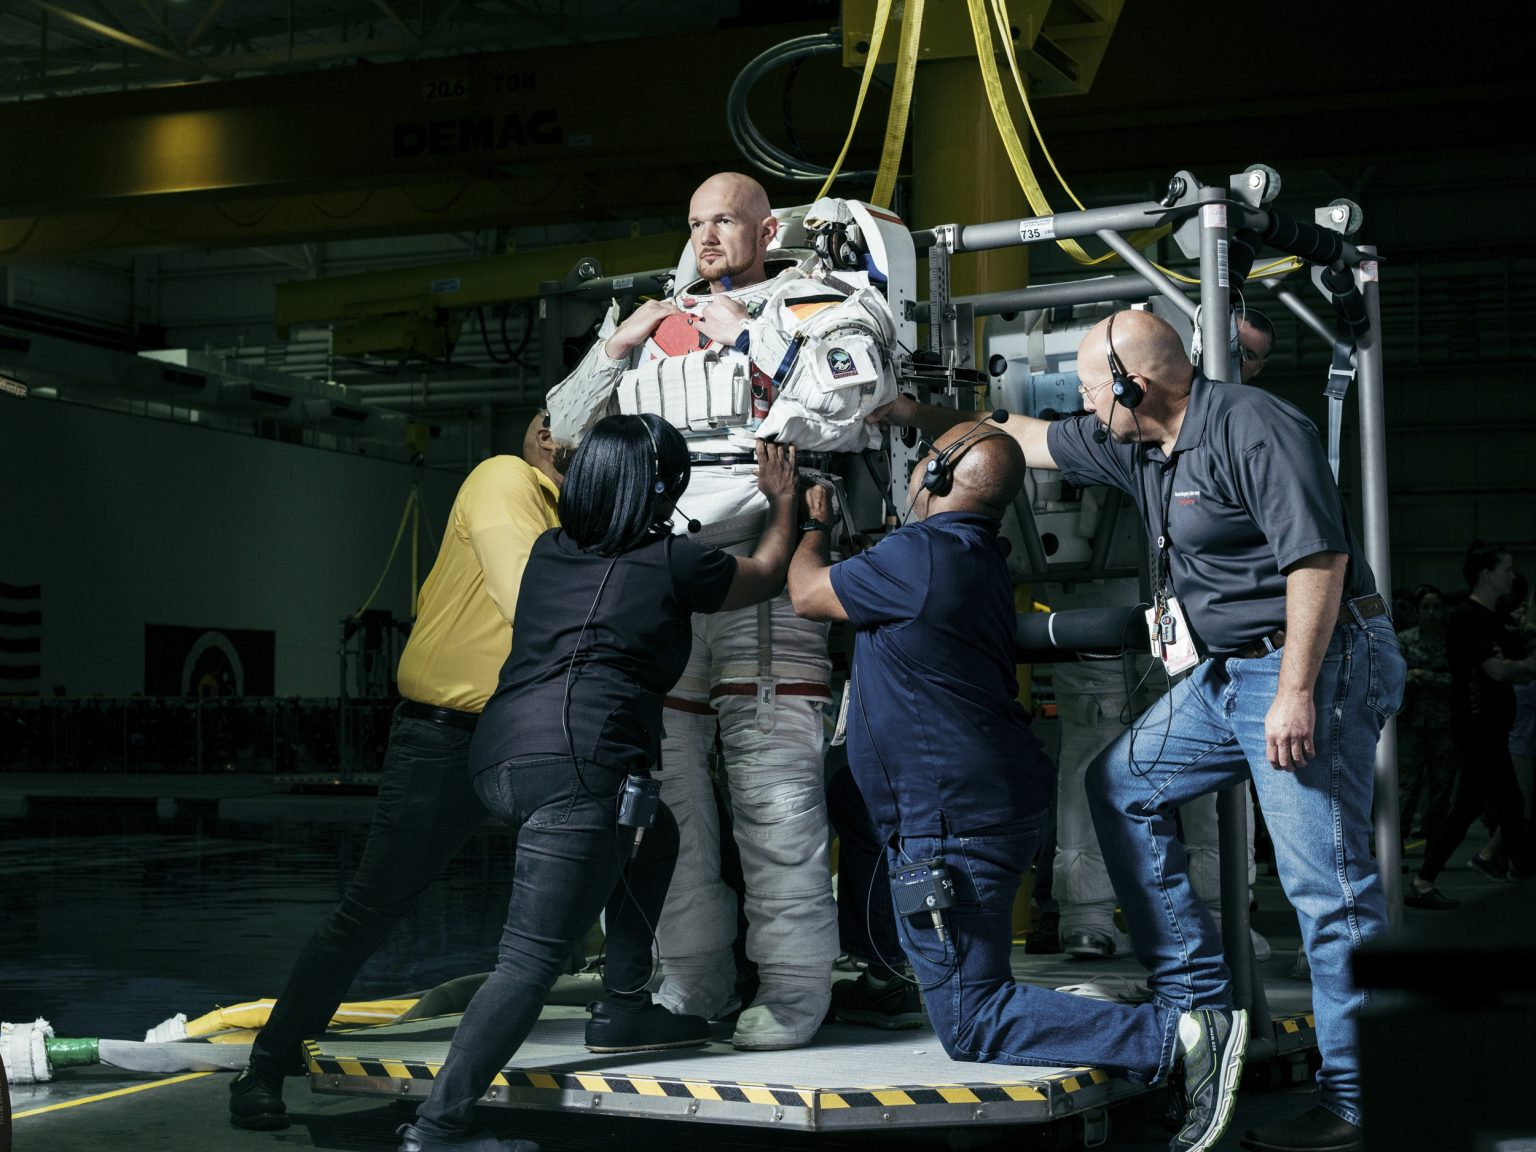 German astronaut Alexander Gerst at the NASA Neutral Buoyancy Laboratory, an astronaut training facility with a pool containing a 1:1 replica of the International Space Station. In this image Gerst is preparing for a long underwater training in preparation for Expedition 57. NASA Johnson Space Center, Houston, Texas, USA, 2018